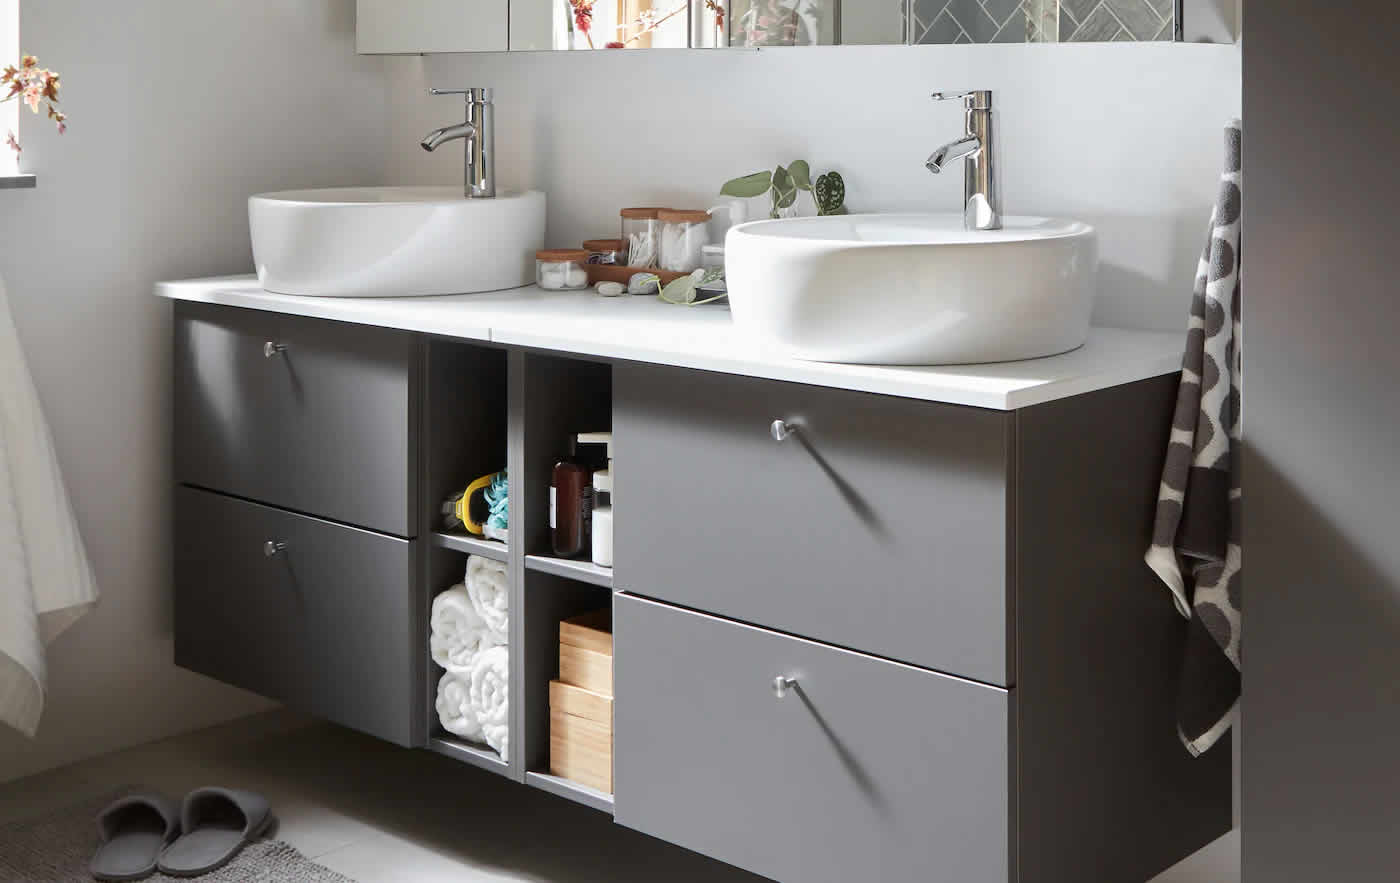 IKEA Ideas - Simple ideas that make your bathroom grow